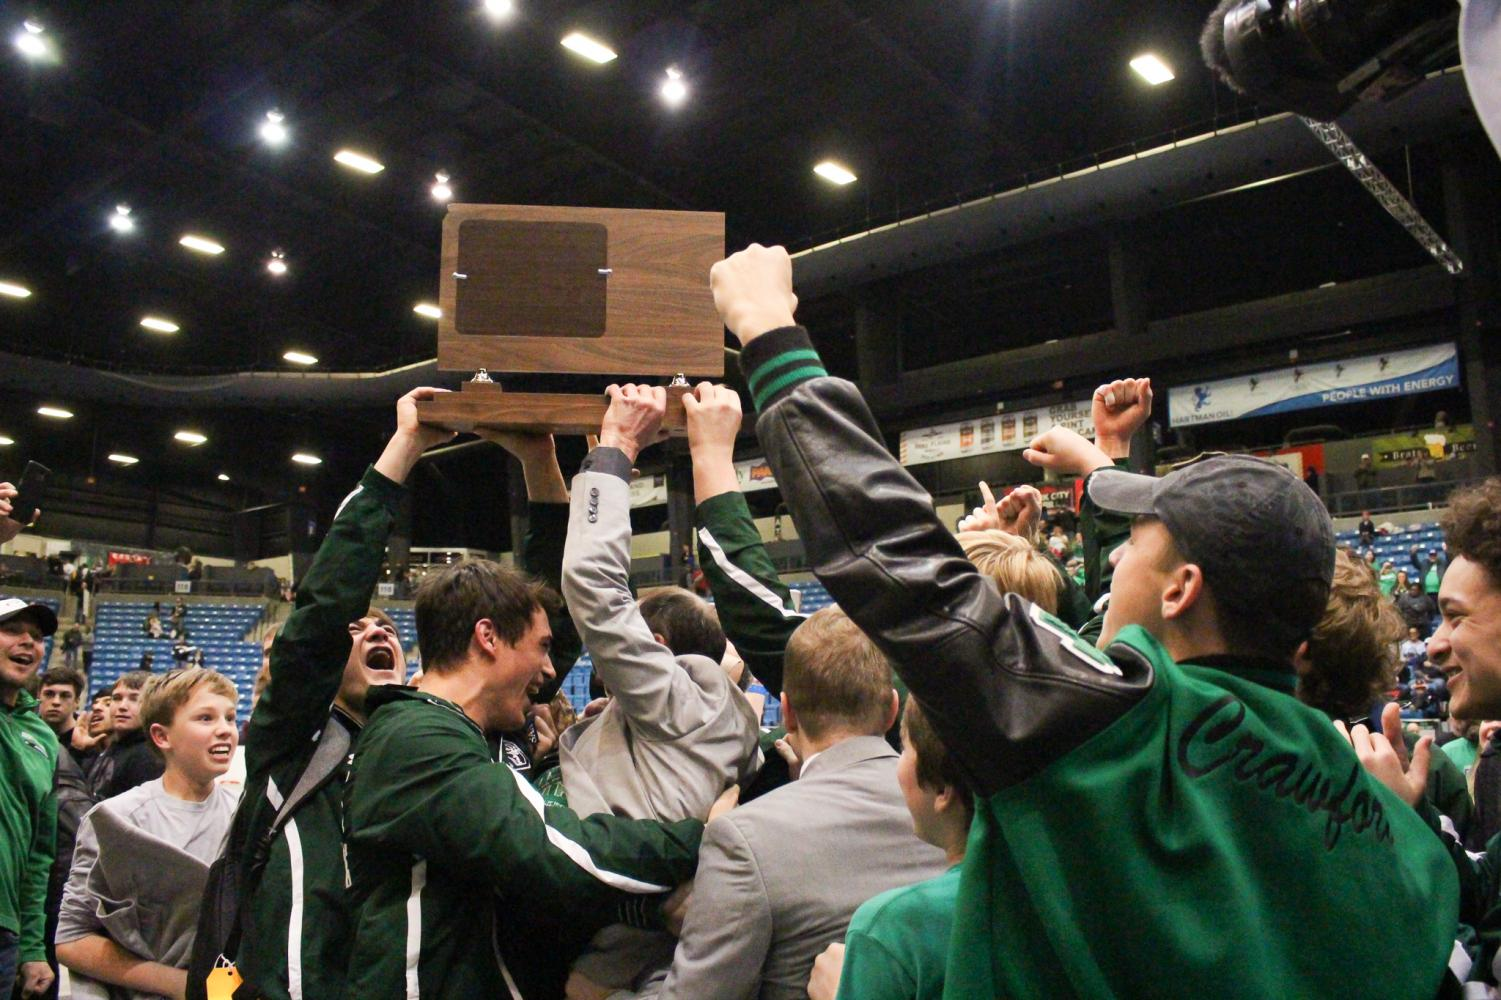 The Derby Wrestling team and it's coaches raise the class 6A state championship trophy. The last time Derby Wrestling won a state title was in 1986.